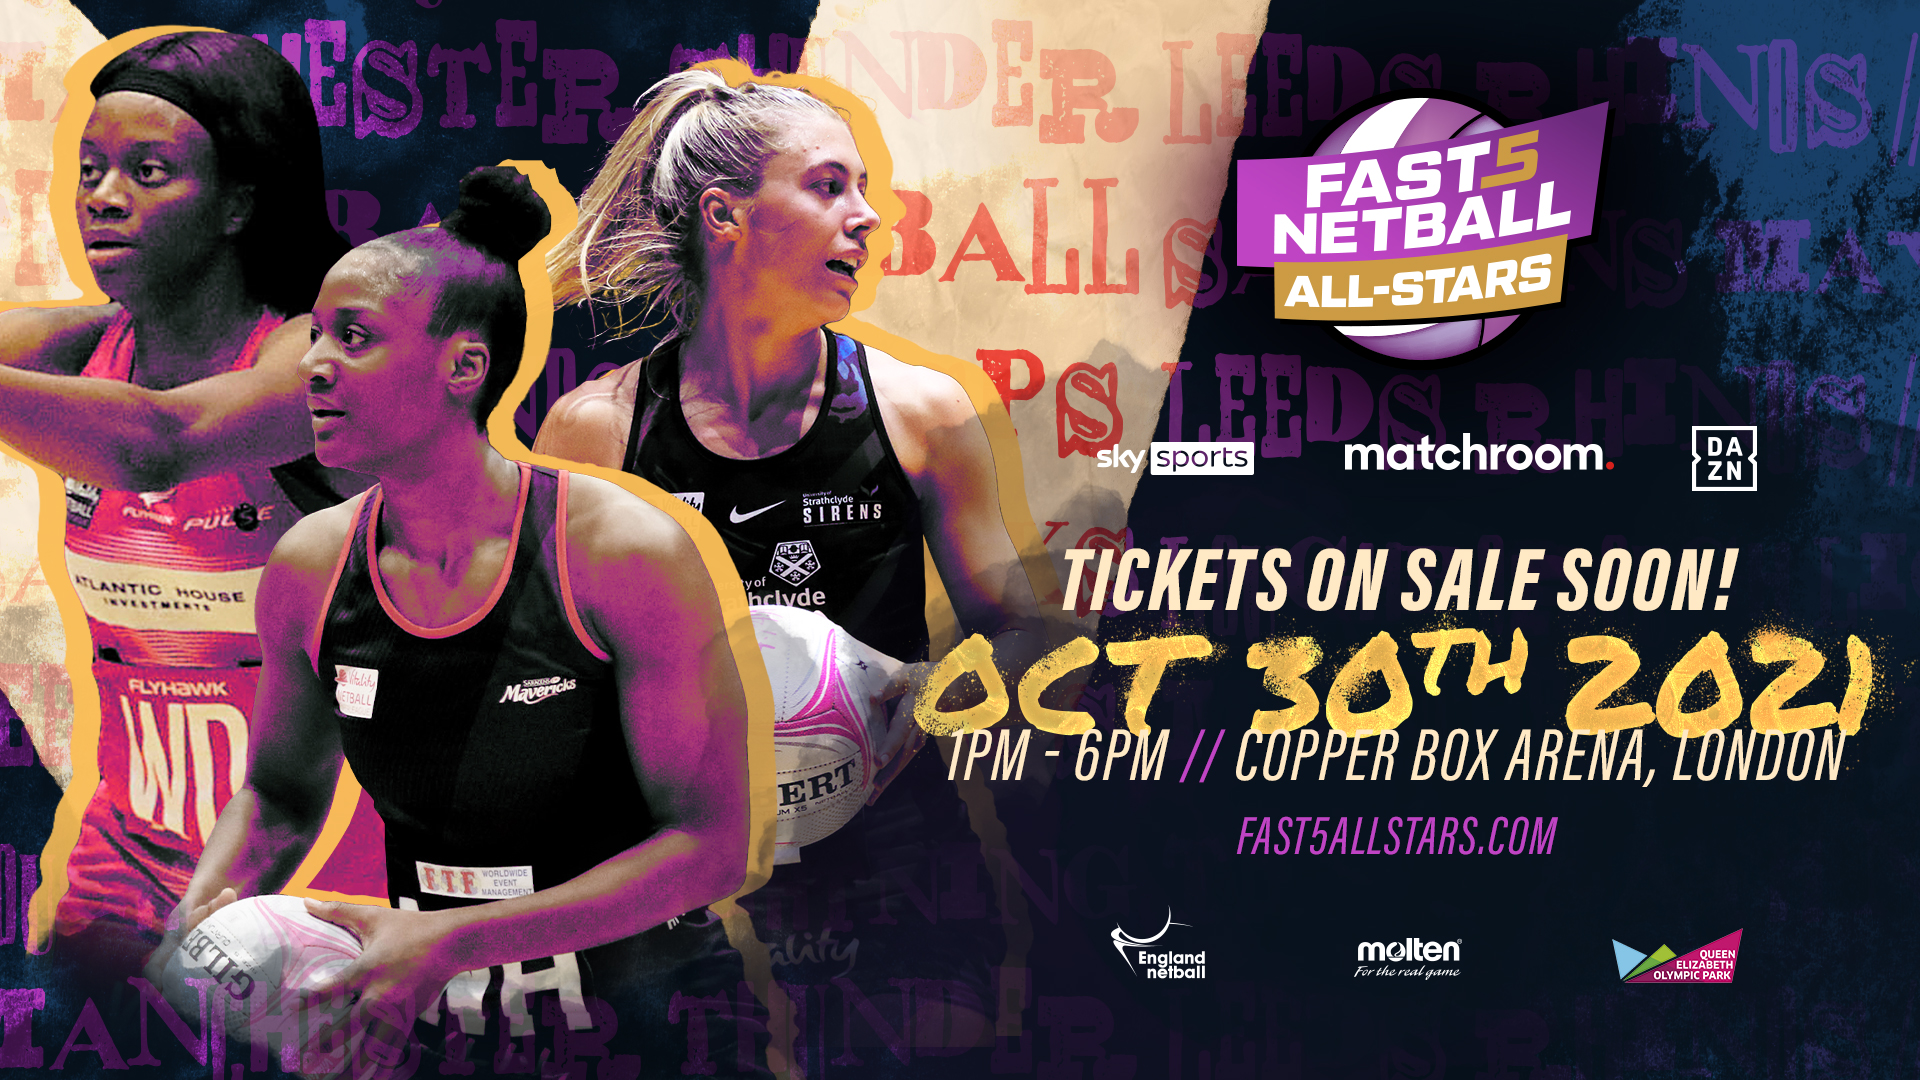 British Fast5 Netball All-Stars Championship returns this October with tickets on sale Friday!